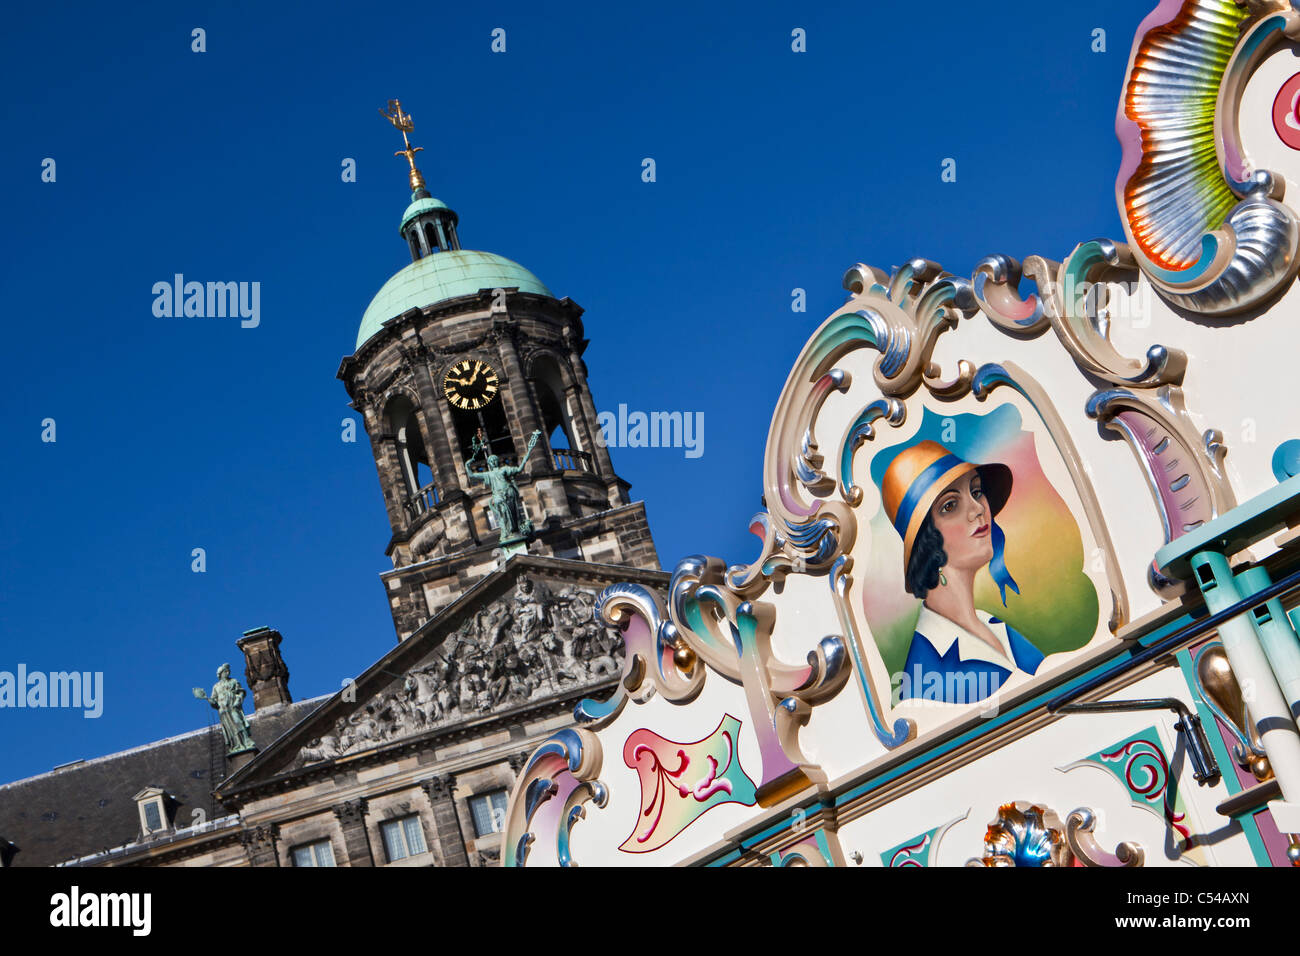 The Netherlands, Amsterdam, Yearly parade of street organs on Dam Square. - Stock Image